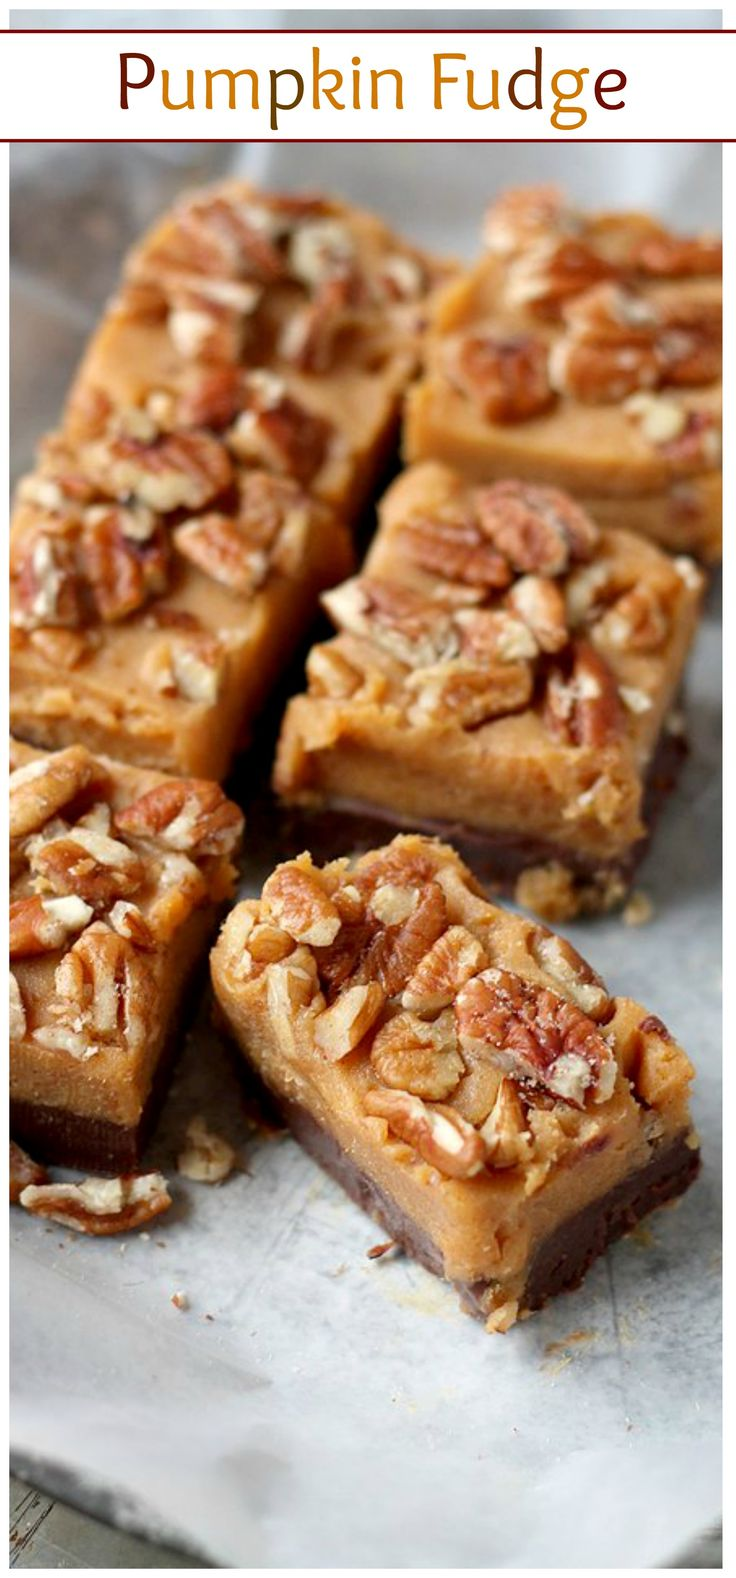 ... Pumpkin Peanut Butter Fudge | Recipe | Pumpkin Fudge, Fudge and Fudge